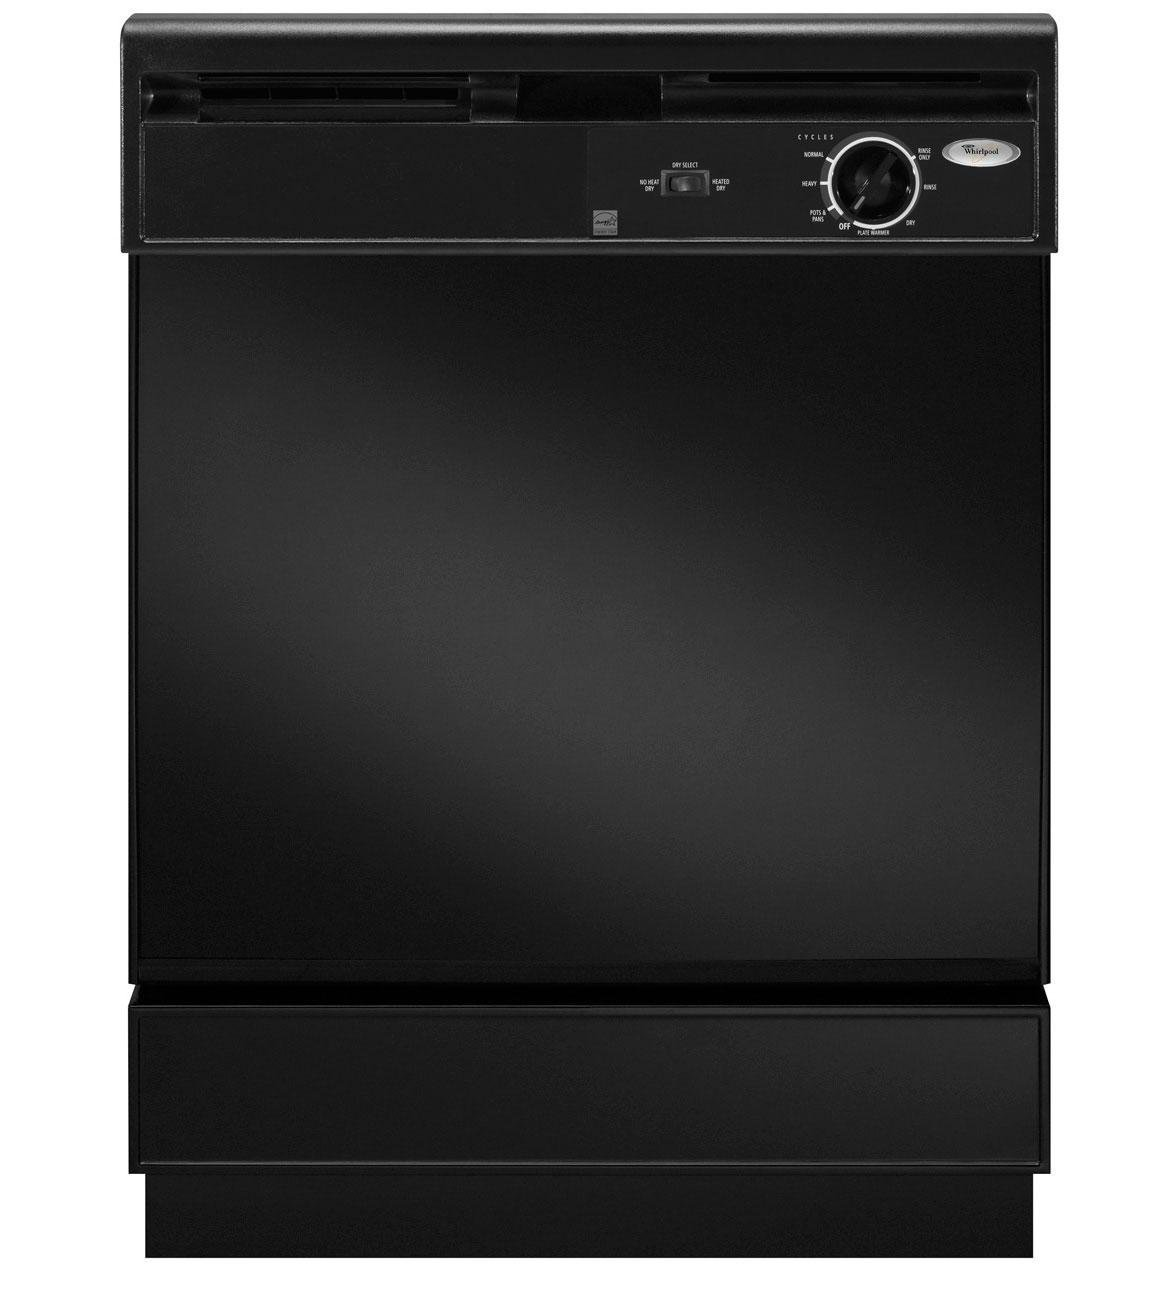 Whirlpool lavavajillas 53 – 7700 integrado 24